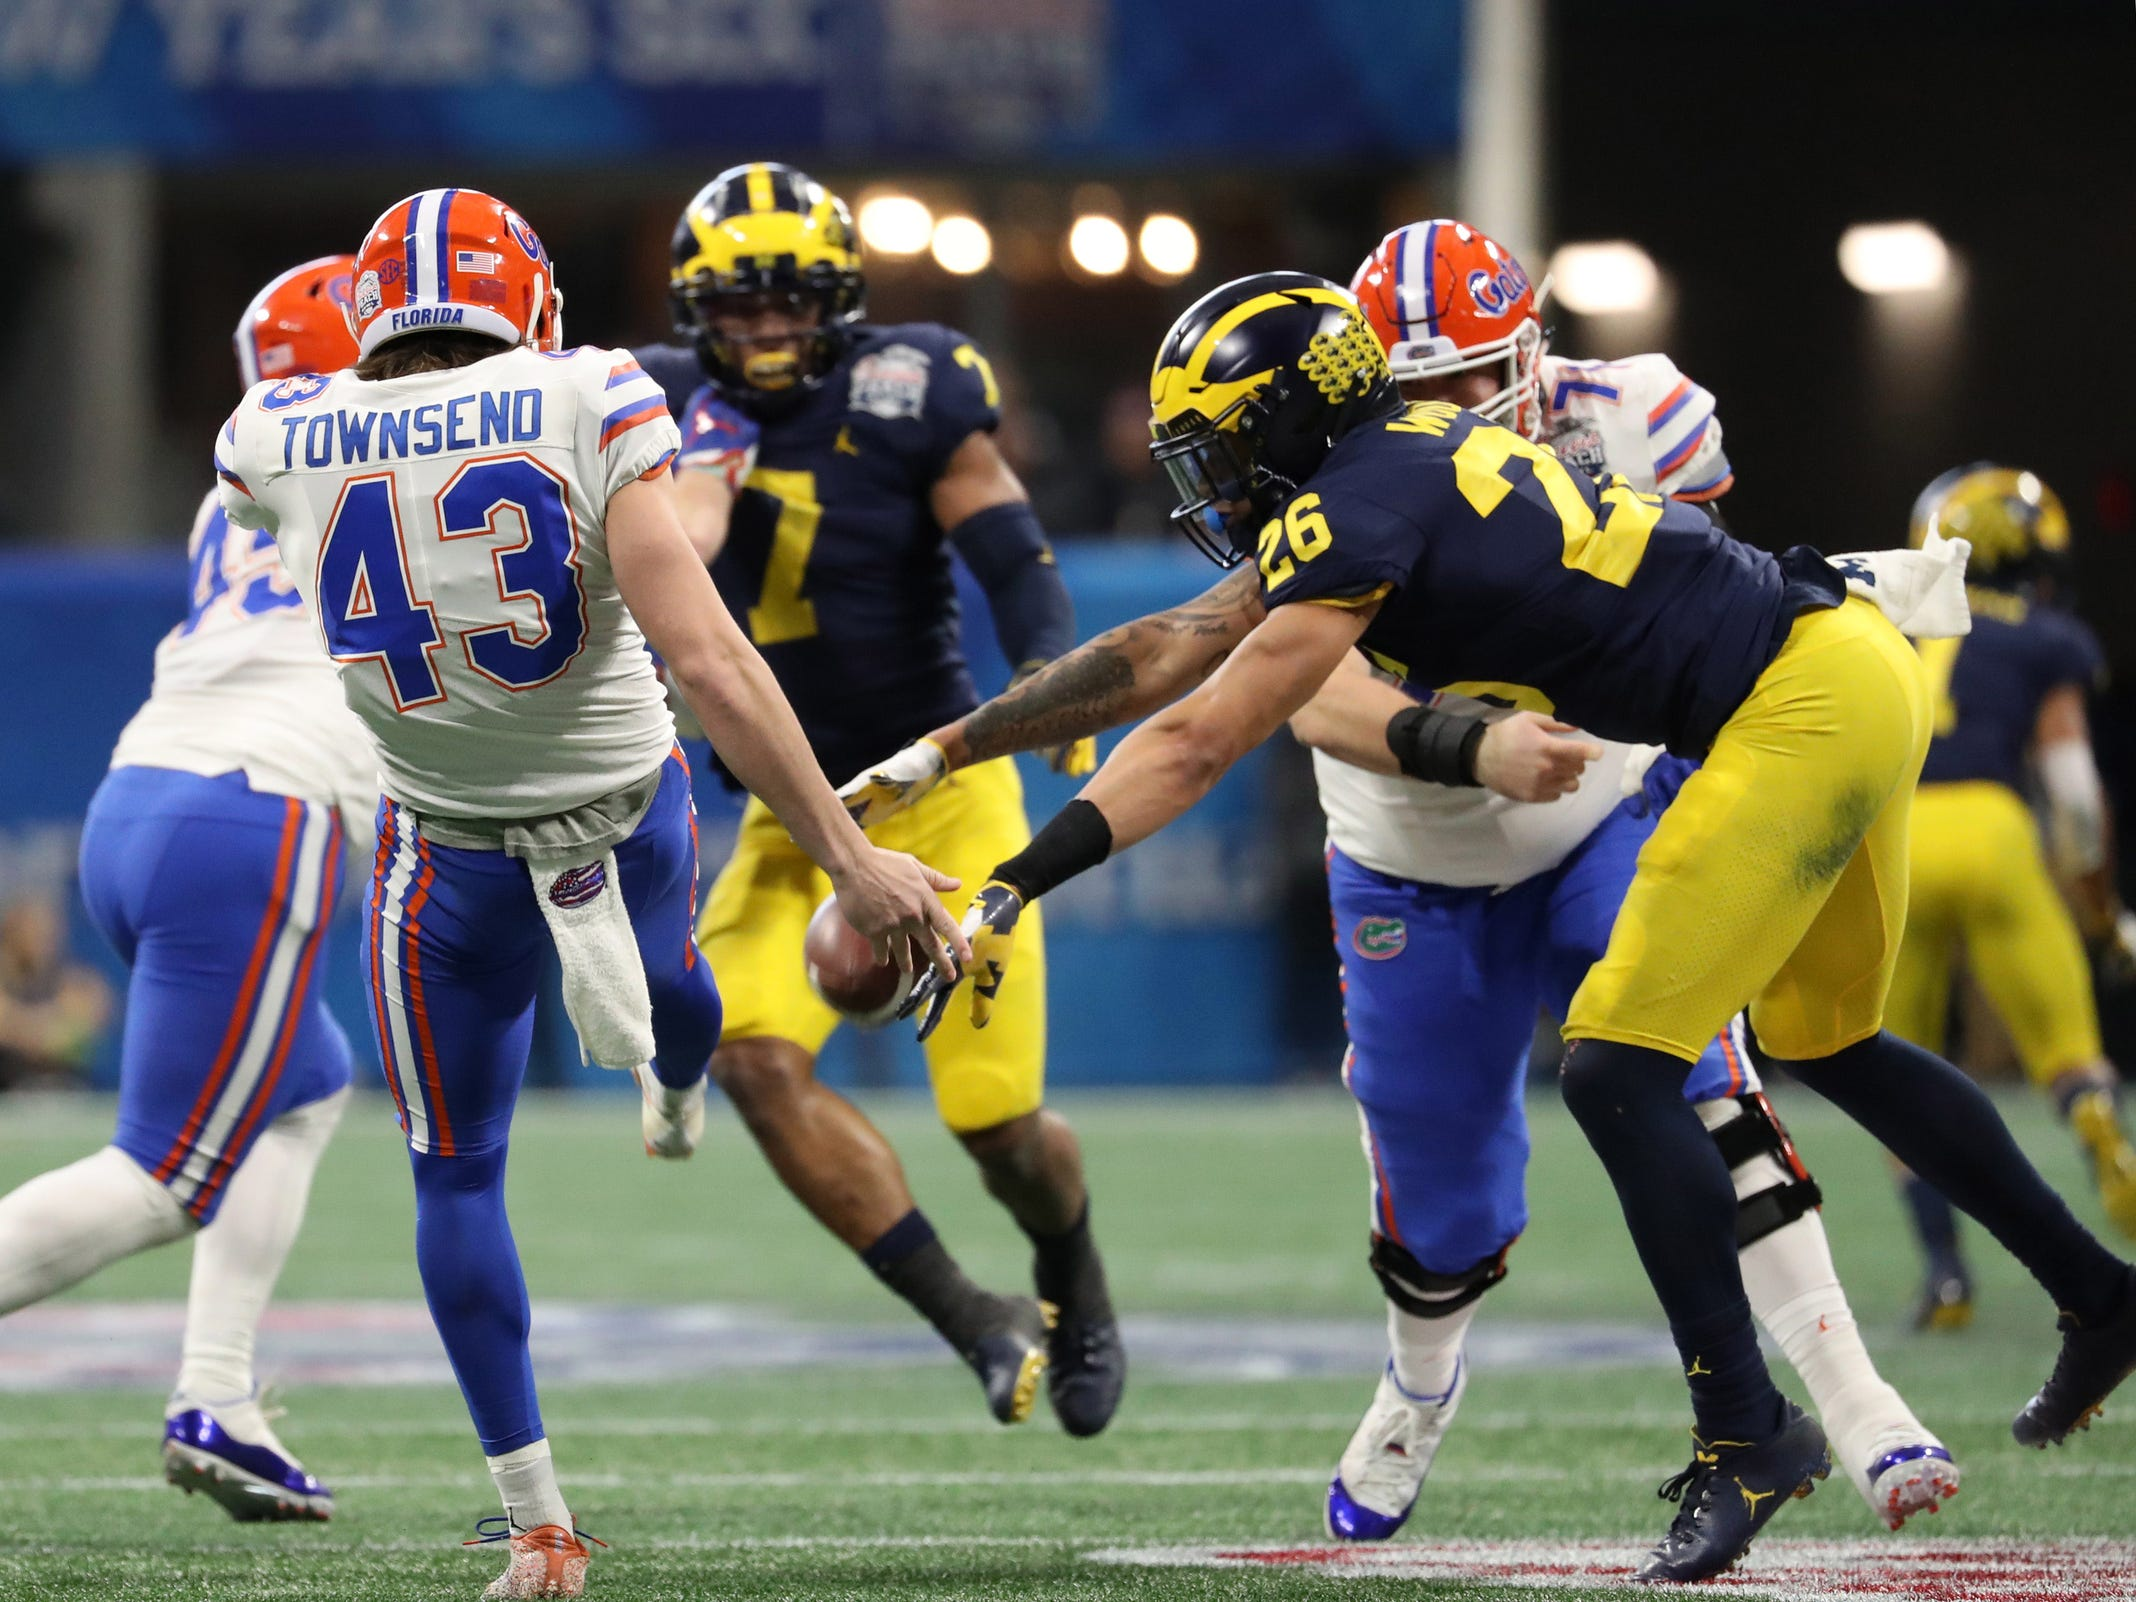 Michigan defensive back J'Marick Woods, right, blocks a punt by Florida punter Tommy Townsend in the second quarter during the Peach Bowl on Saturday, Dec. 29, 2018, in Atlanta.